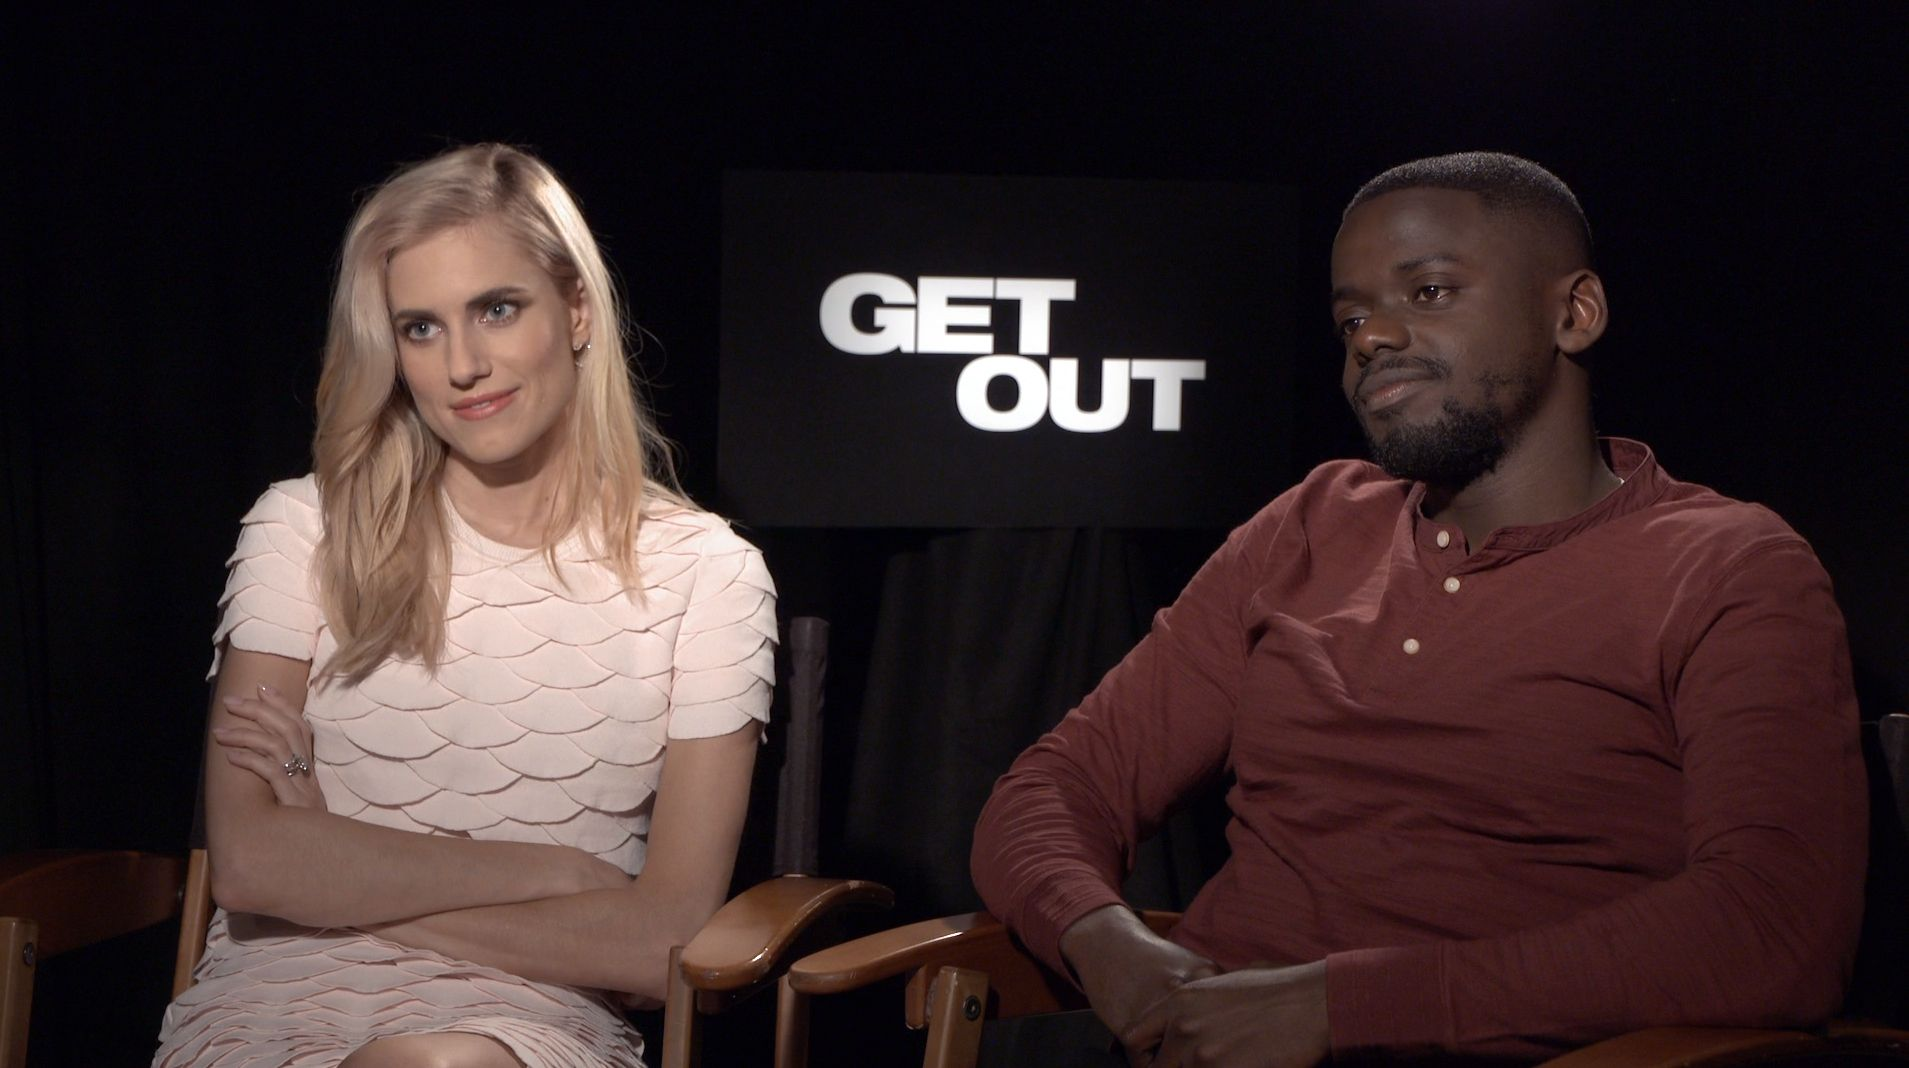 Allison Dean Nude get out: allison williams and daniel kaluuya interview